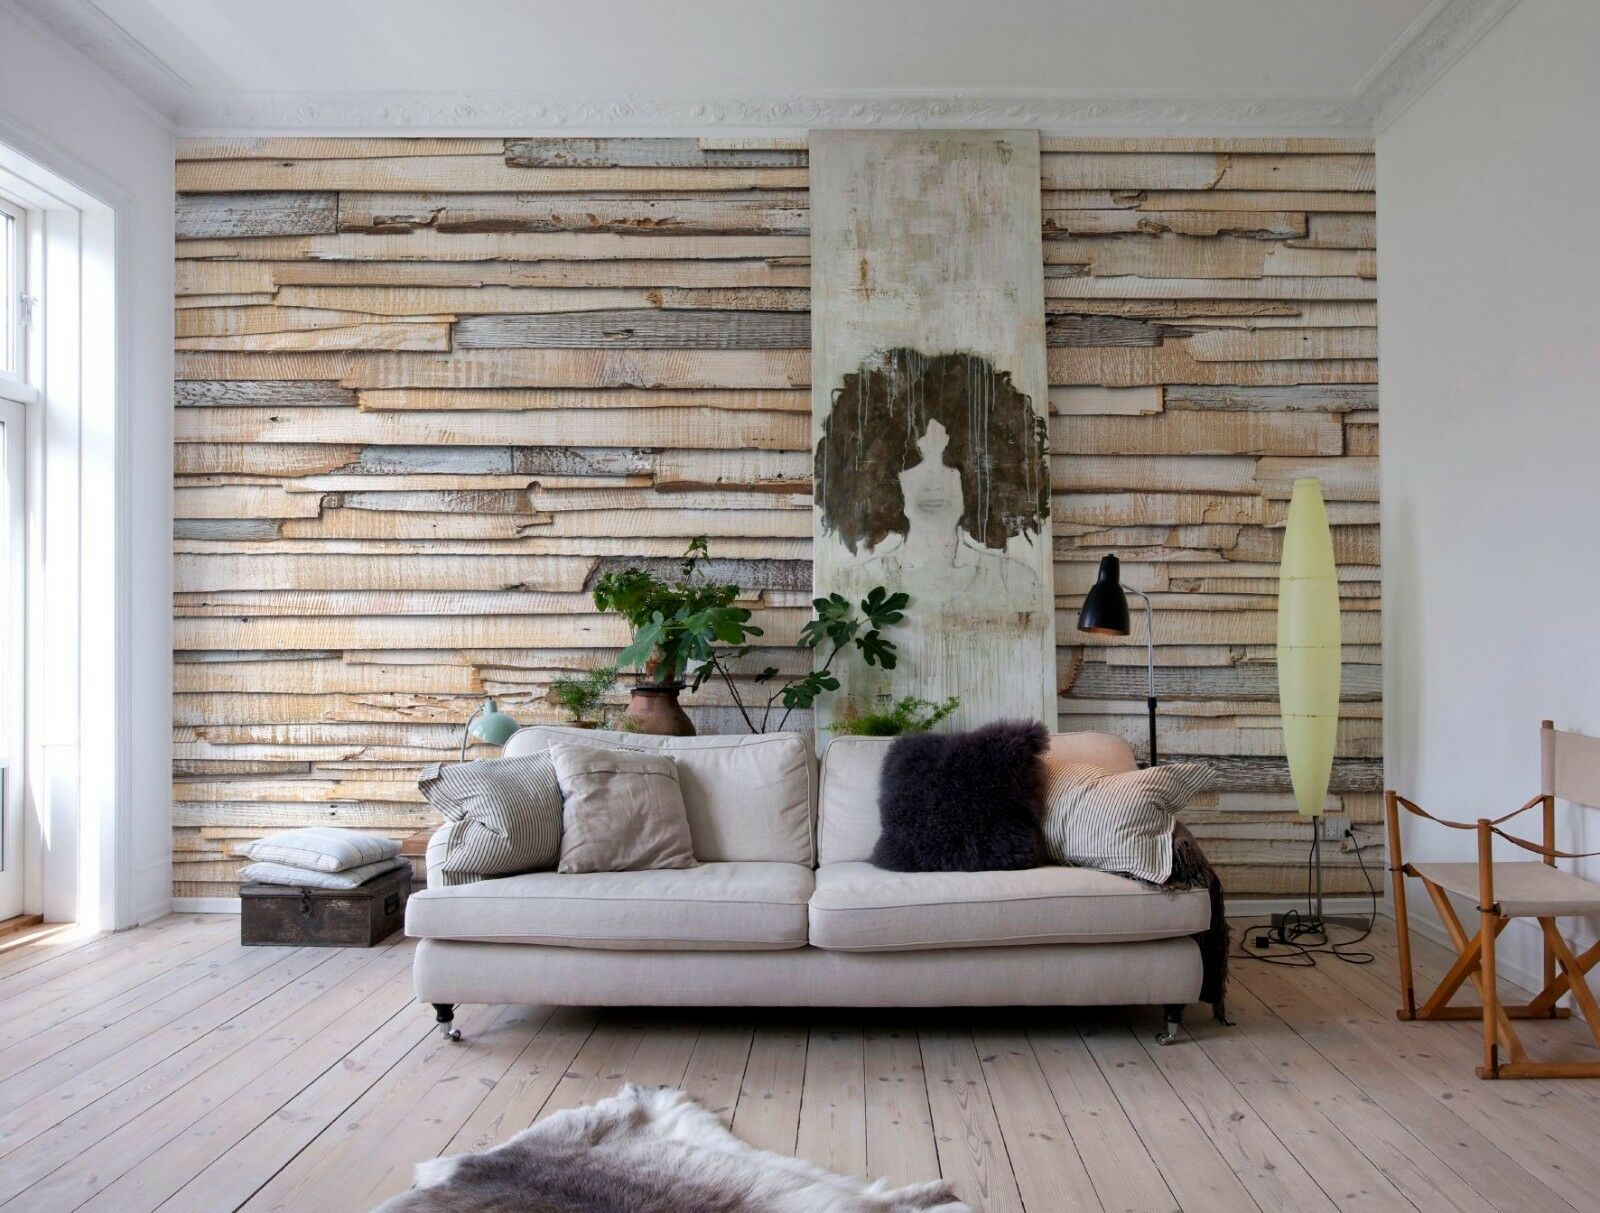 Wall Mural Photo Wallpaper WeißWASHED WOOD WOODEN WALL Home Art Decor 368X254cm